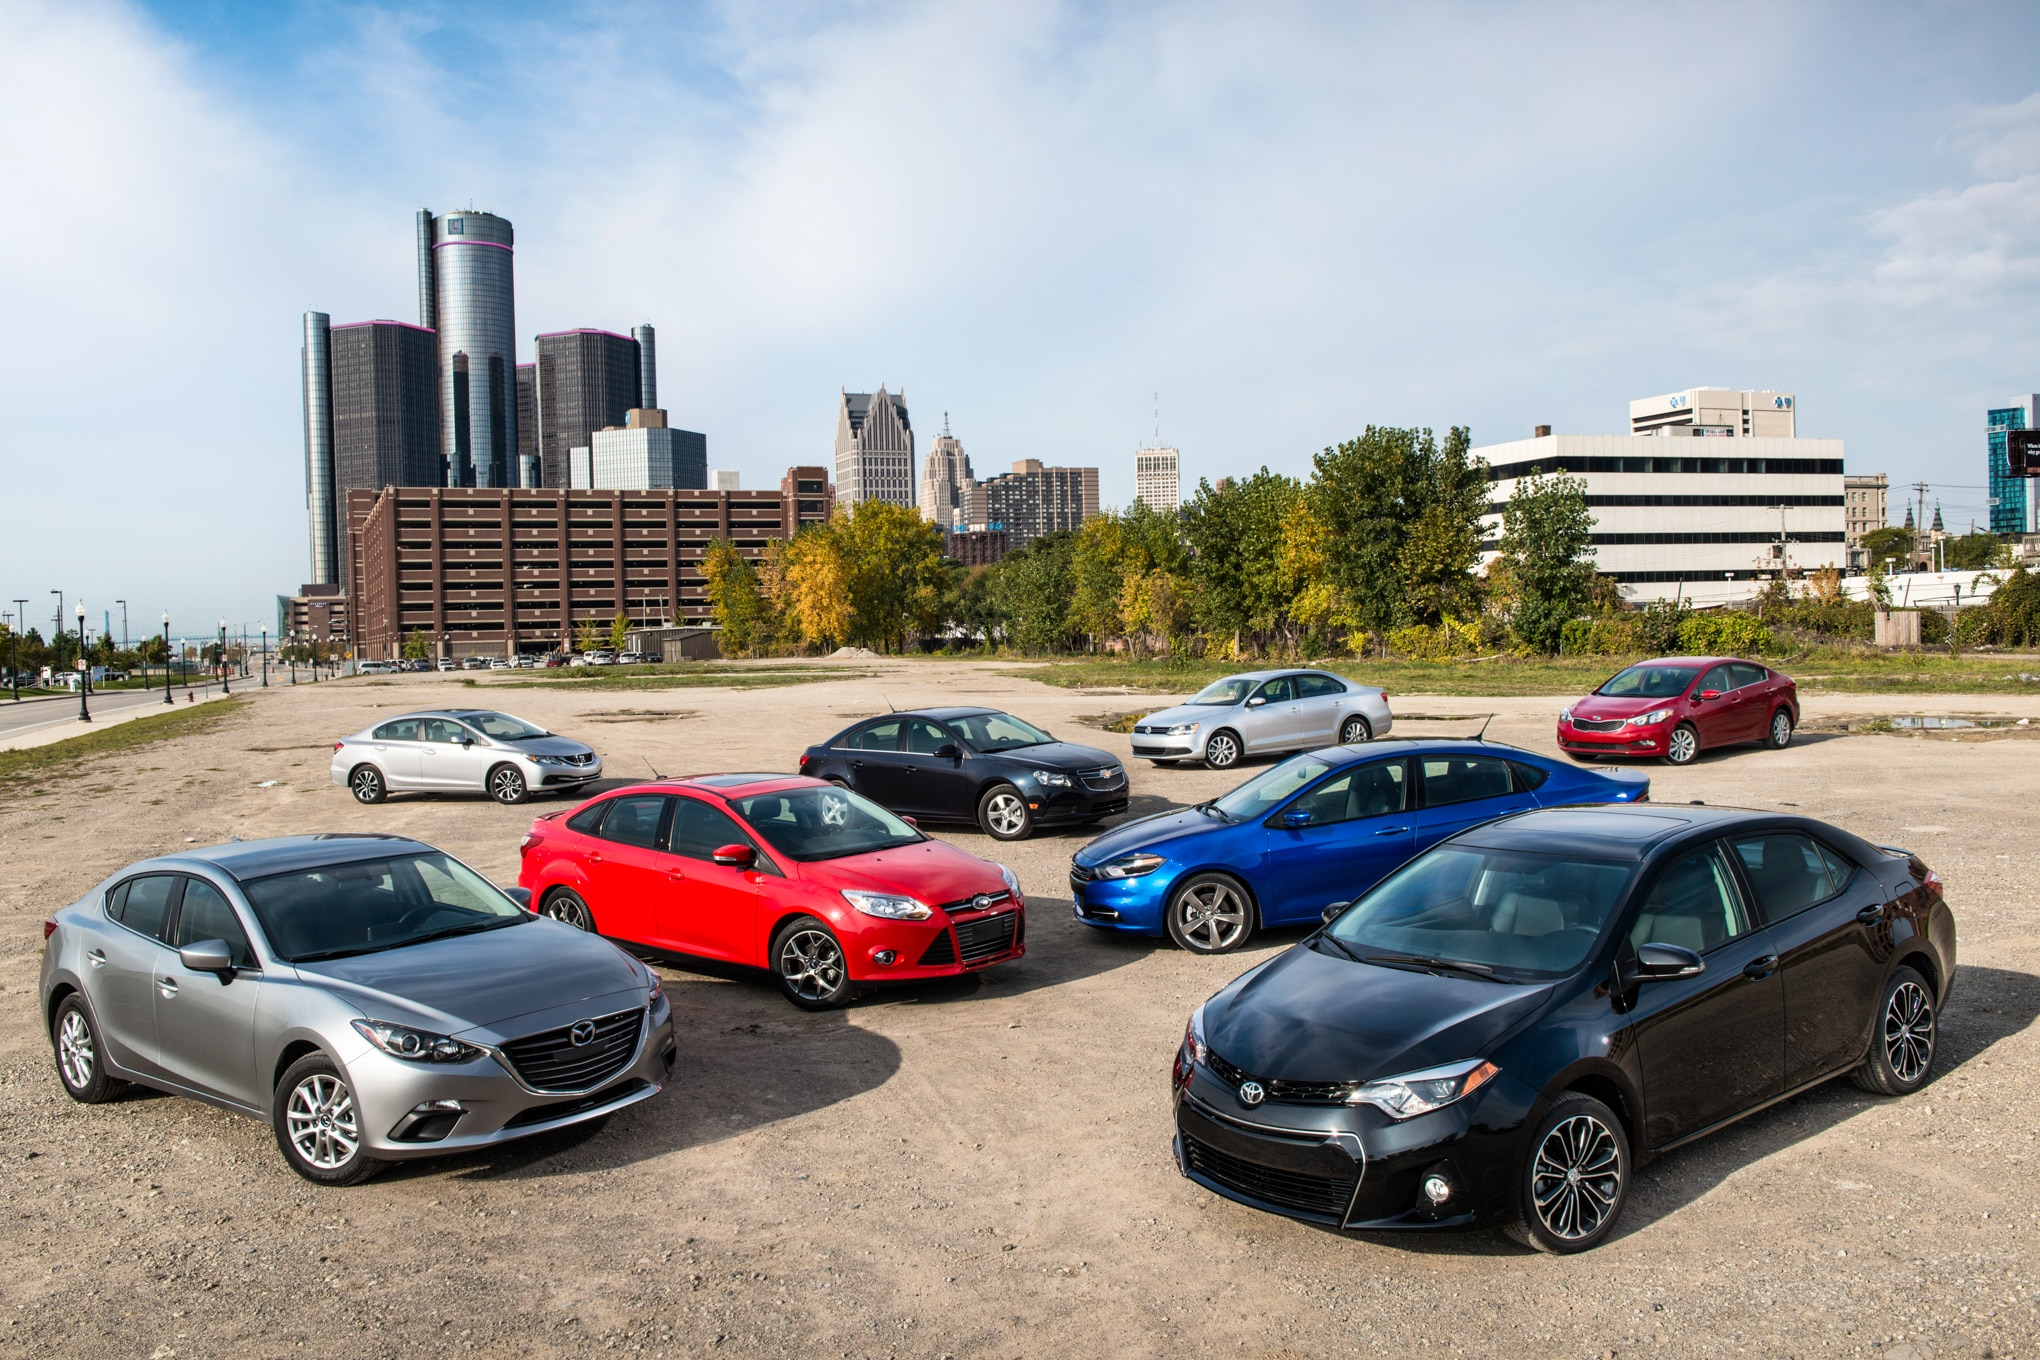 2014 Automobile Magazine Compact Sedan Comparison Day One 8 Car Group Image 1